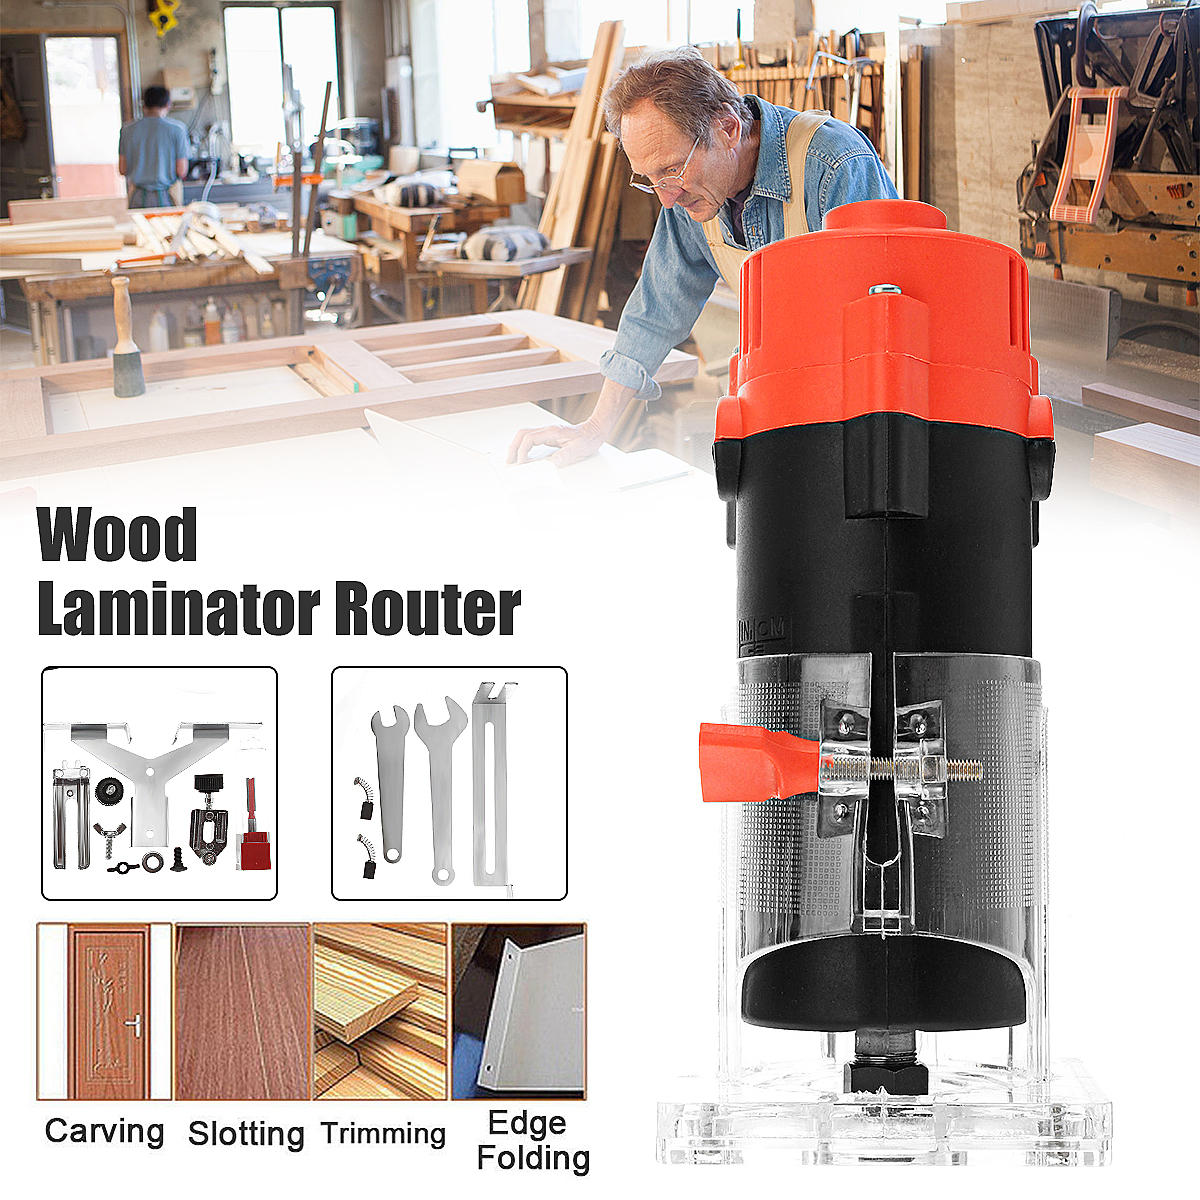 220V 500W Corded Electric Hand Trimmer 6.35mm DIY Wood Laminator Router Power Tools Woodworking Trimming Cutter Carving machinery kitchen furniture decoration hand curves and straight lines trimmer woodworking tools manual trimming knife planing